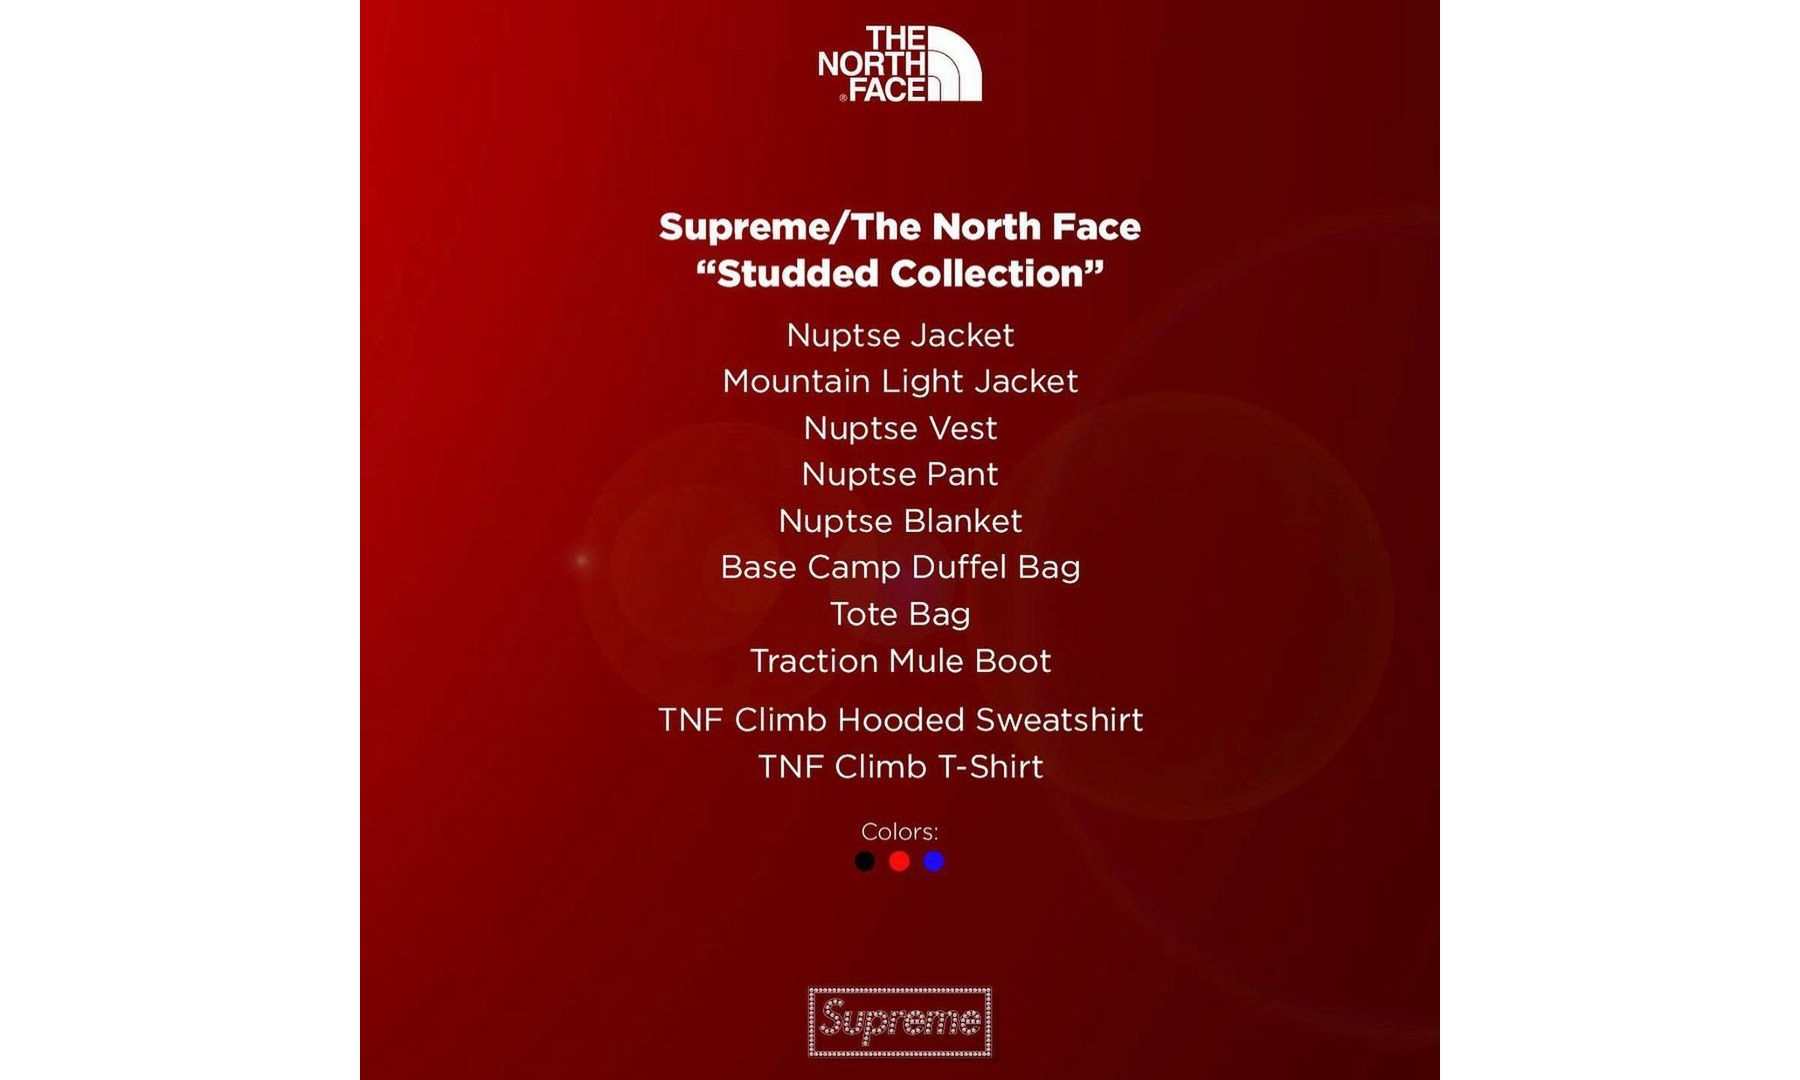 Supreme x THE NORTH FACE 推出全新 Studded Collection